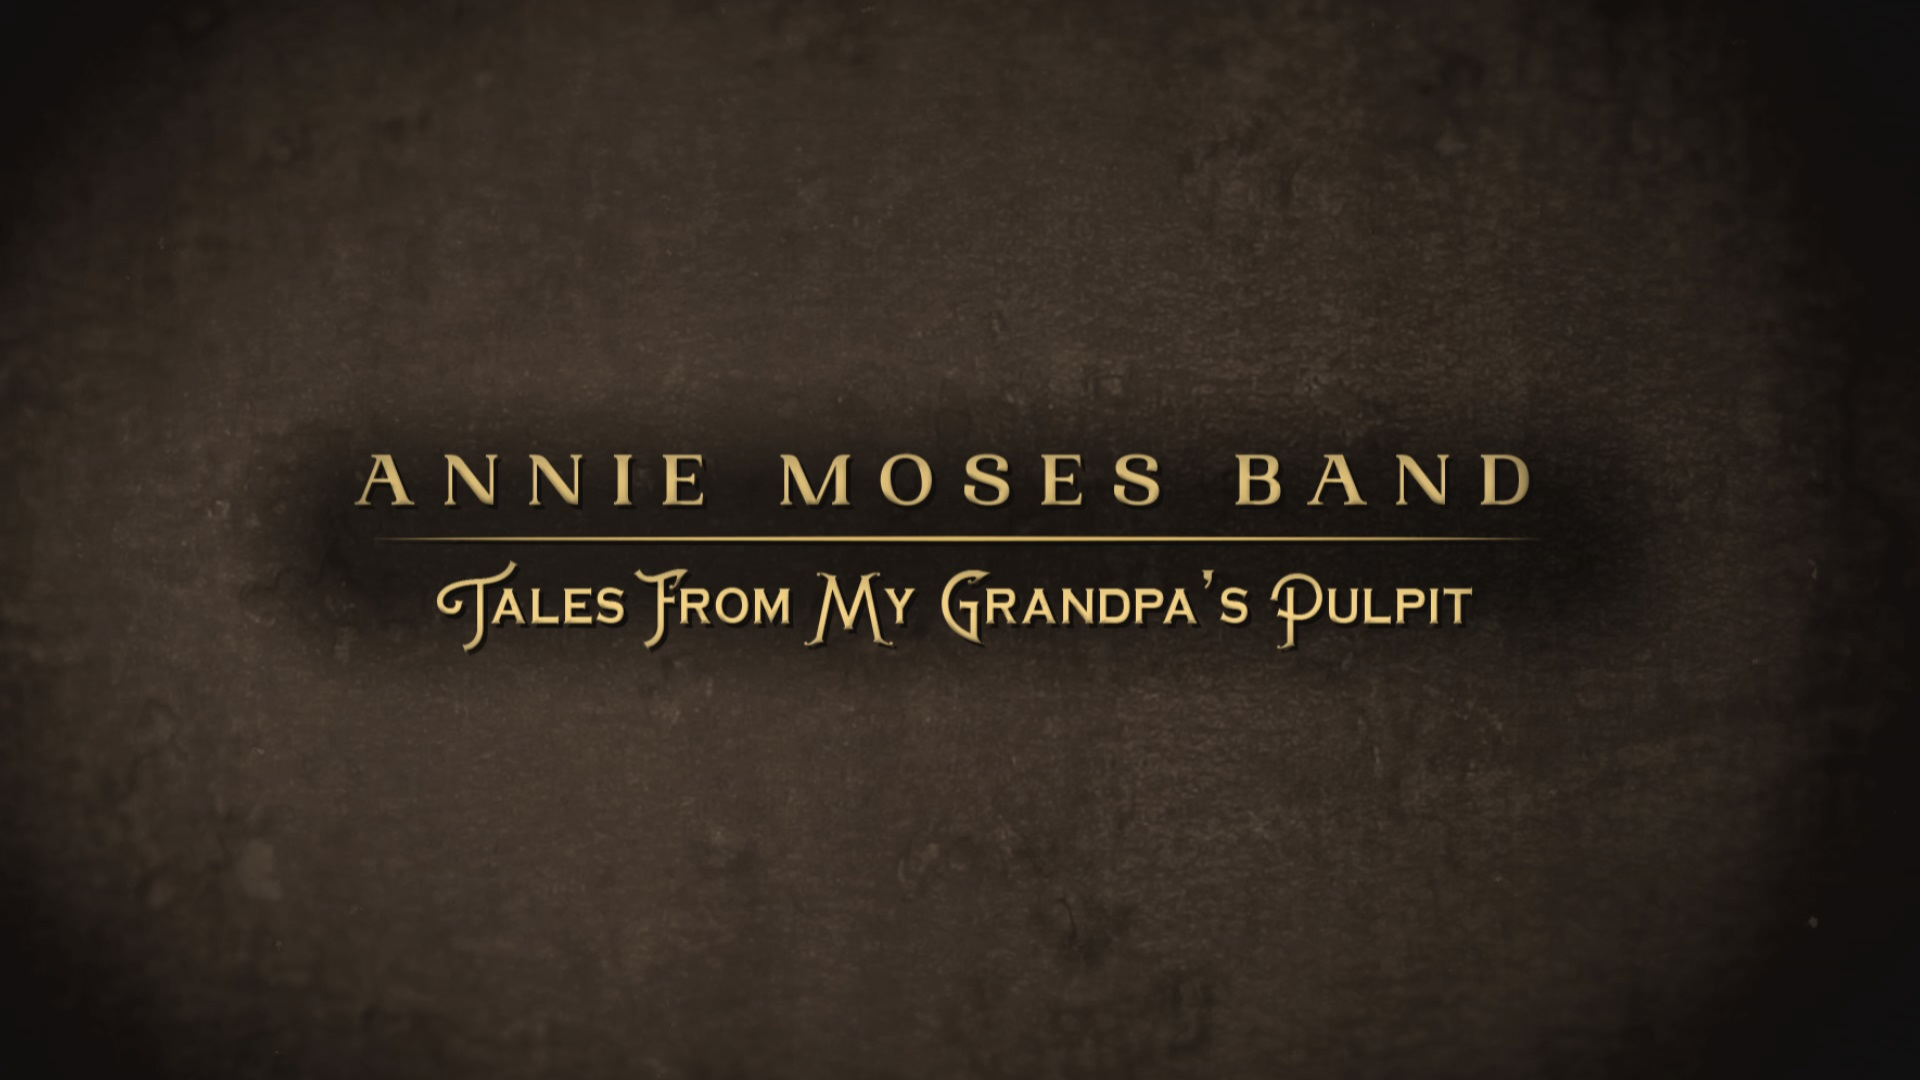 Annie Moses Band: Tales From My Grandpa's Pulpit